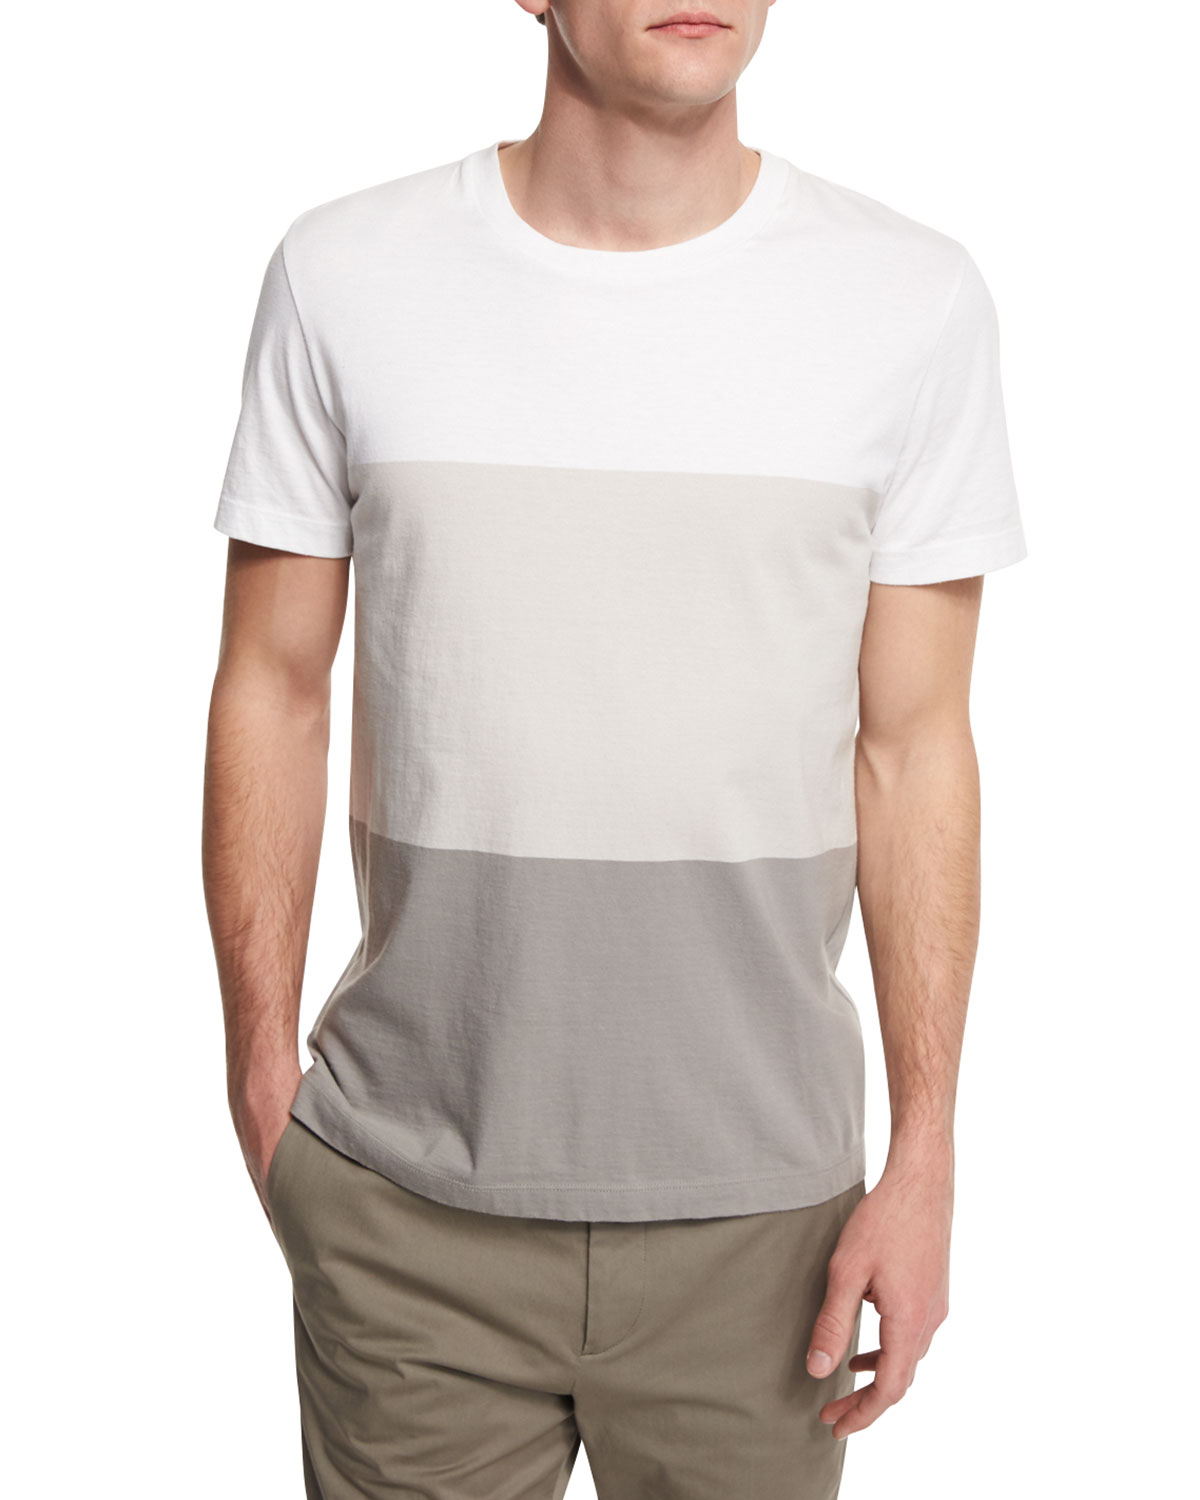 Koree Colorblock Short-Sleeve T-Shirt, White Multi